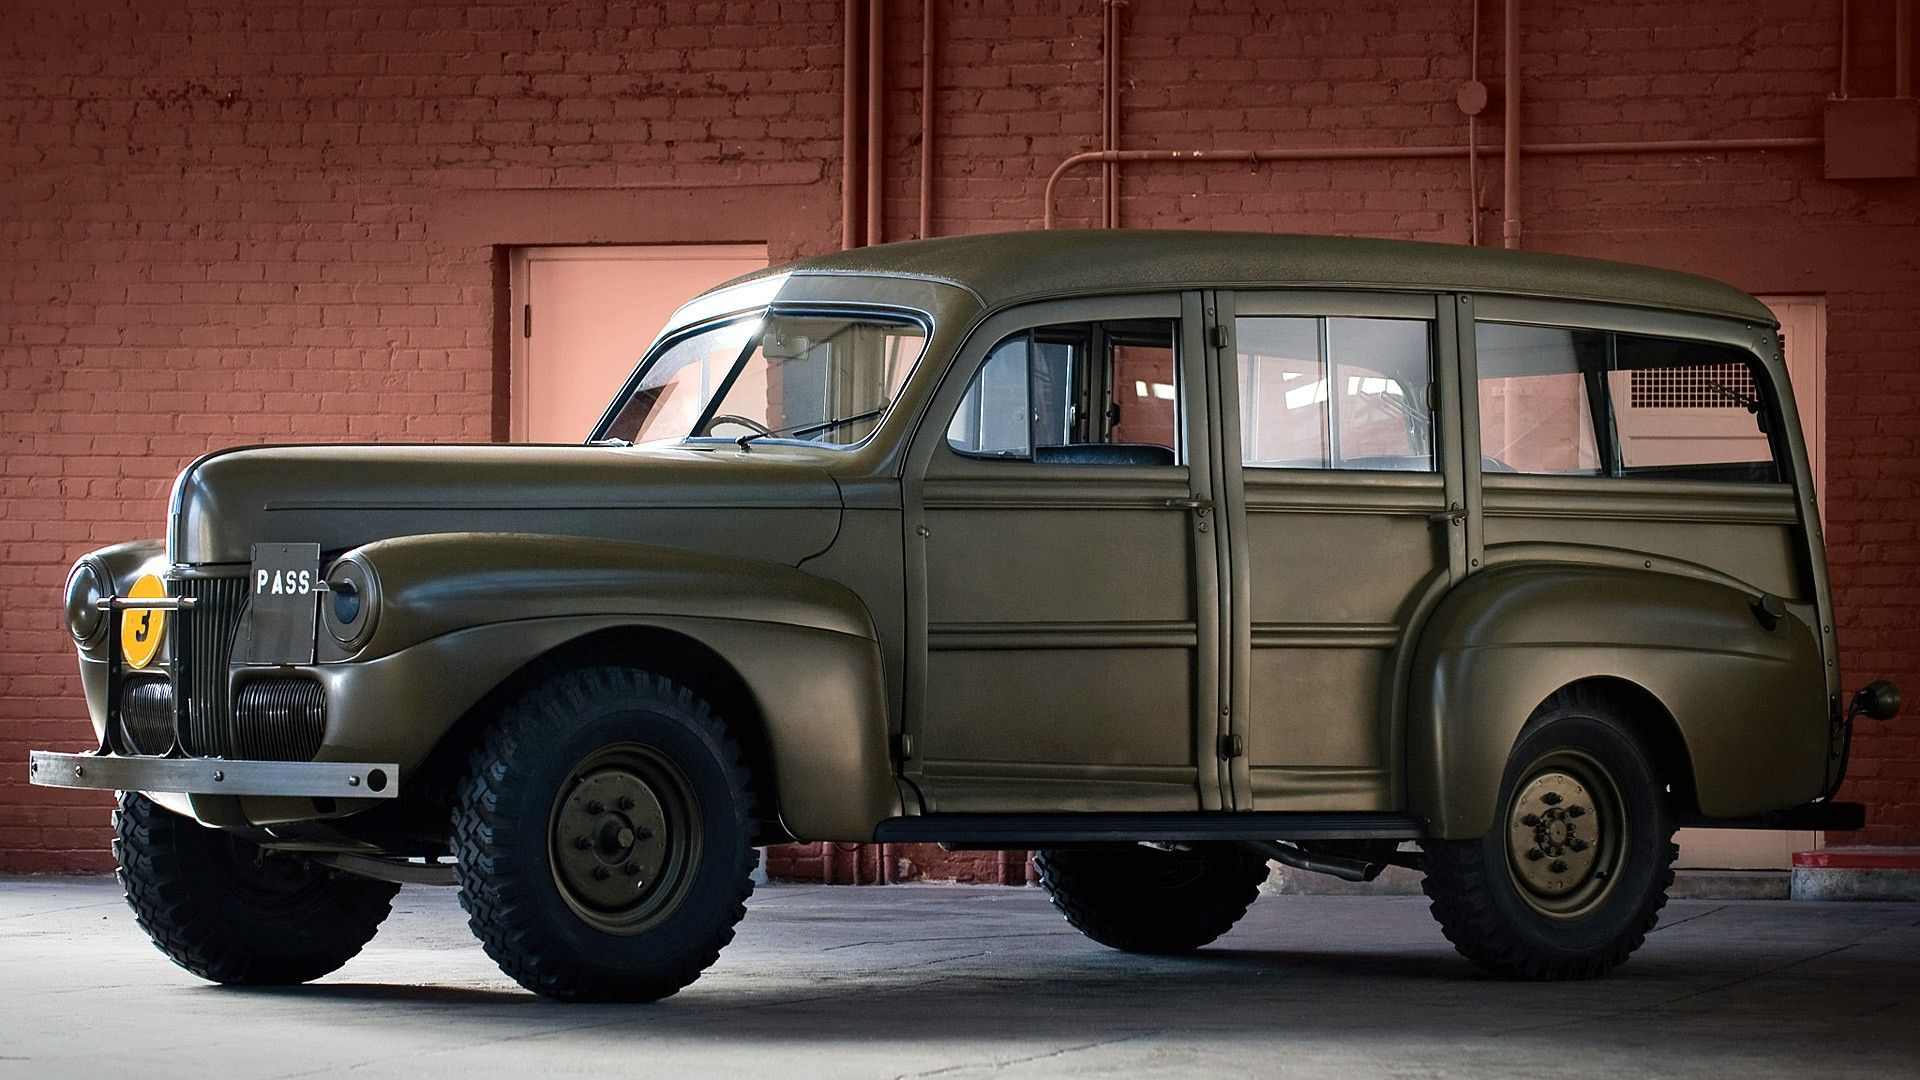 FleetMasters - 1941 Ford Fordor Staff Car | vehicules military | Pinterest | Ford Jeep dodge and Cars & FleetMasters - 1941 Ford Fordor Staff Car | vehicules military ... markmcfarlin.com